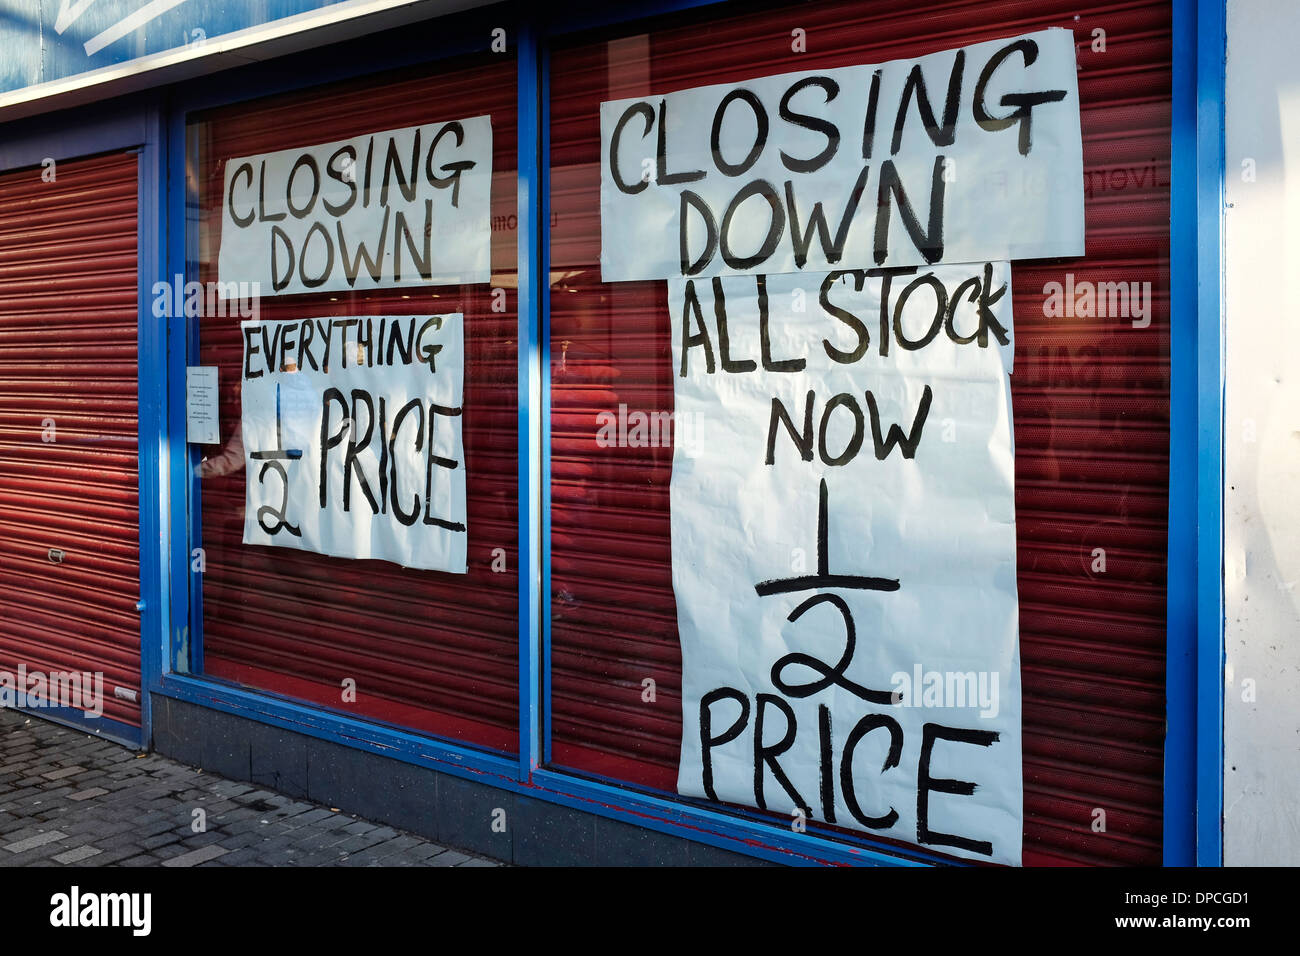 Closing down signs in the window of a closed shop - Stock Image